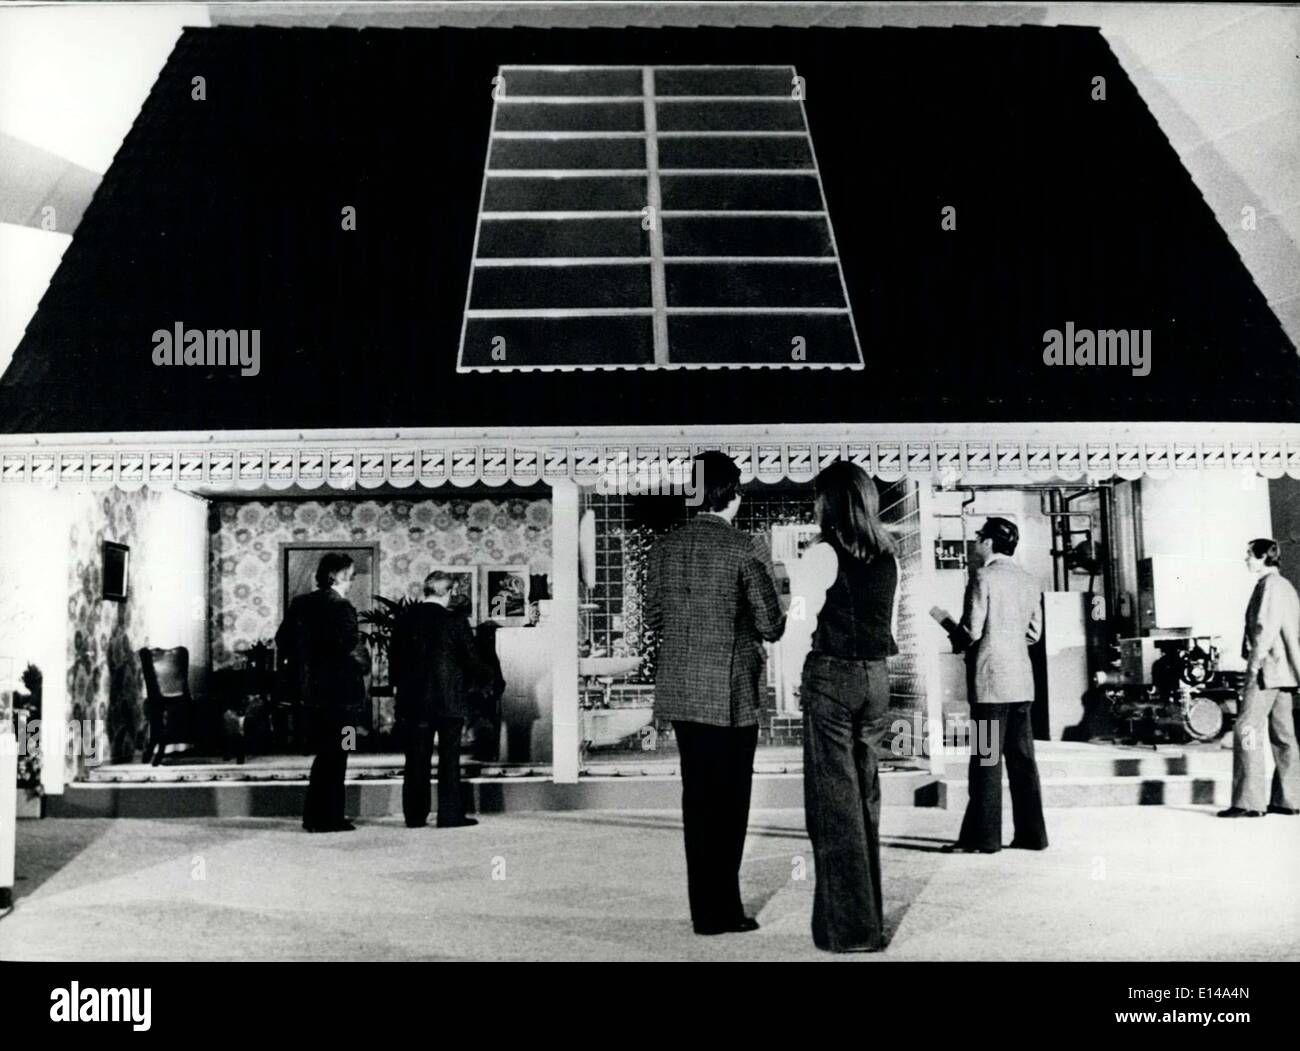 Apr. 17, 2012 - Novel combined solar heating system presented at the Hannover Fair April 28 to May 6, 1976 : This ''cut up'' ho - Stock Image